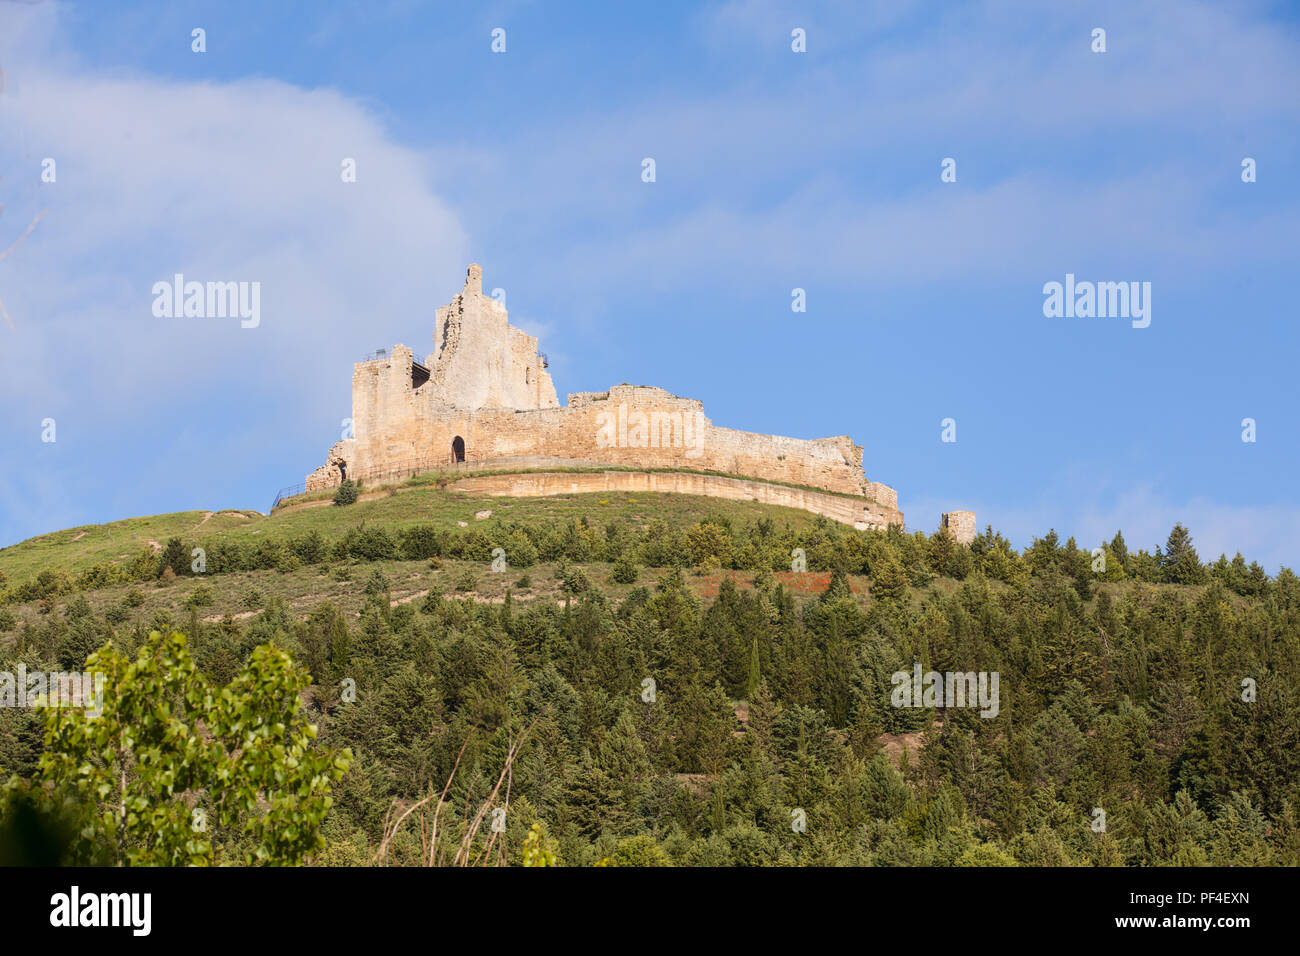 The Templar castle ruins in the Spanish town of Castrojeriz seen from the footpath the Camino de Santiago the way of St James Castille y Leon Spain - Stock Image